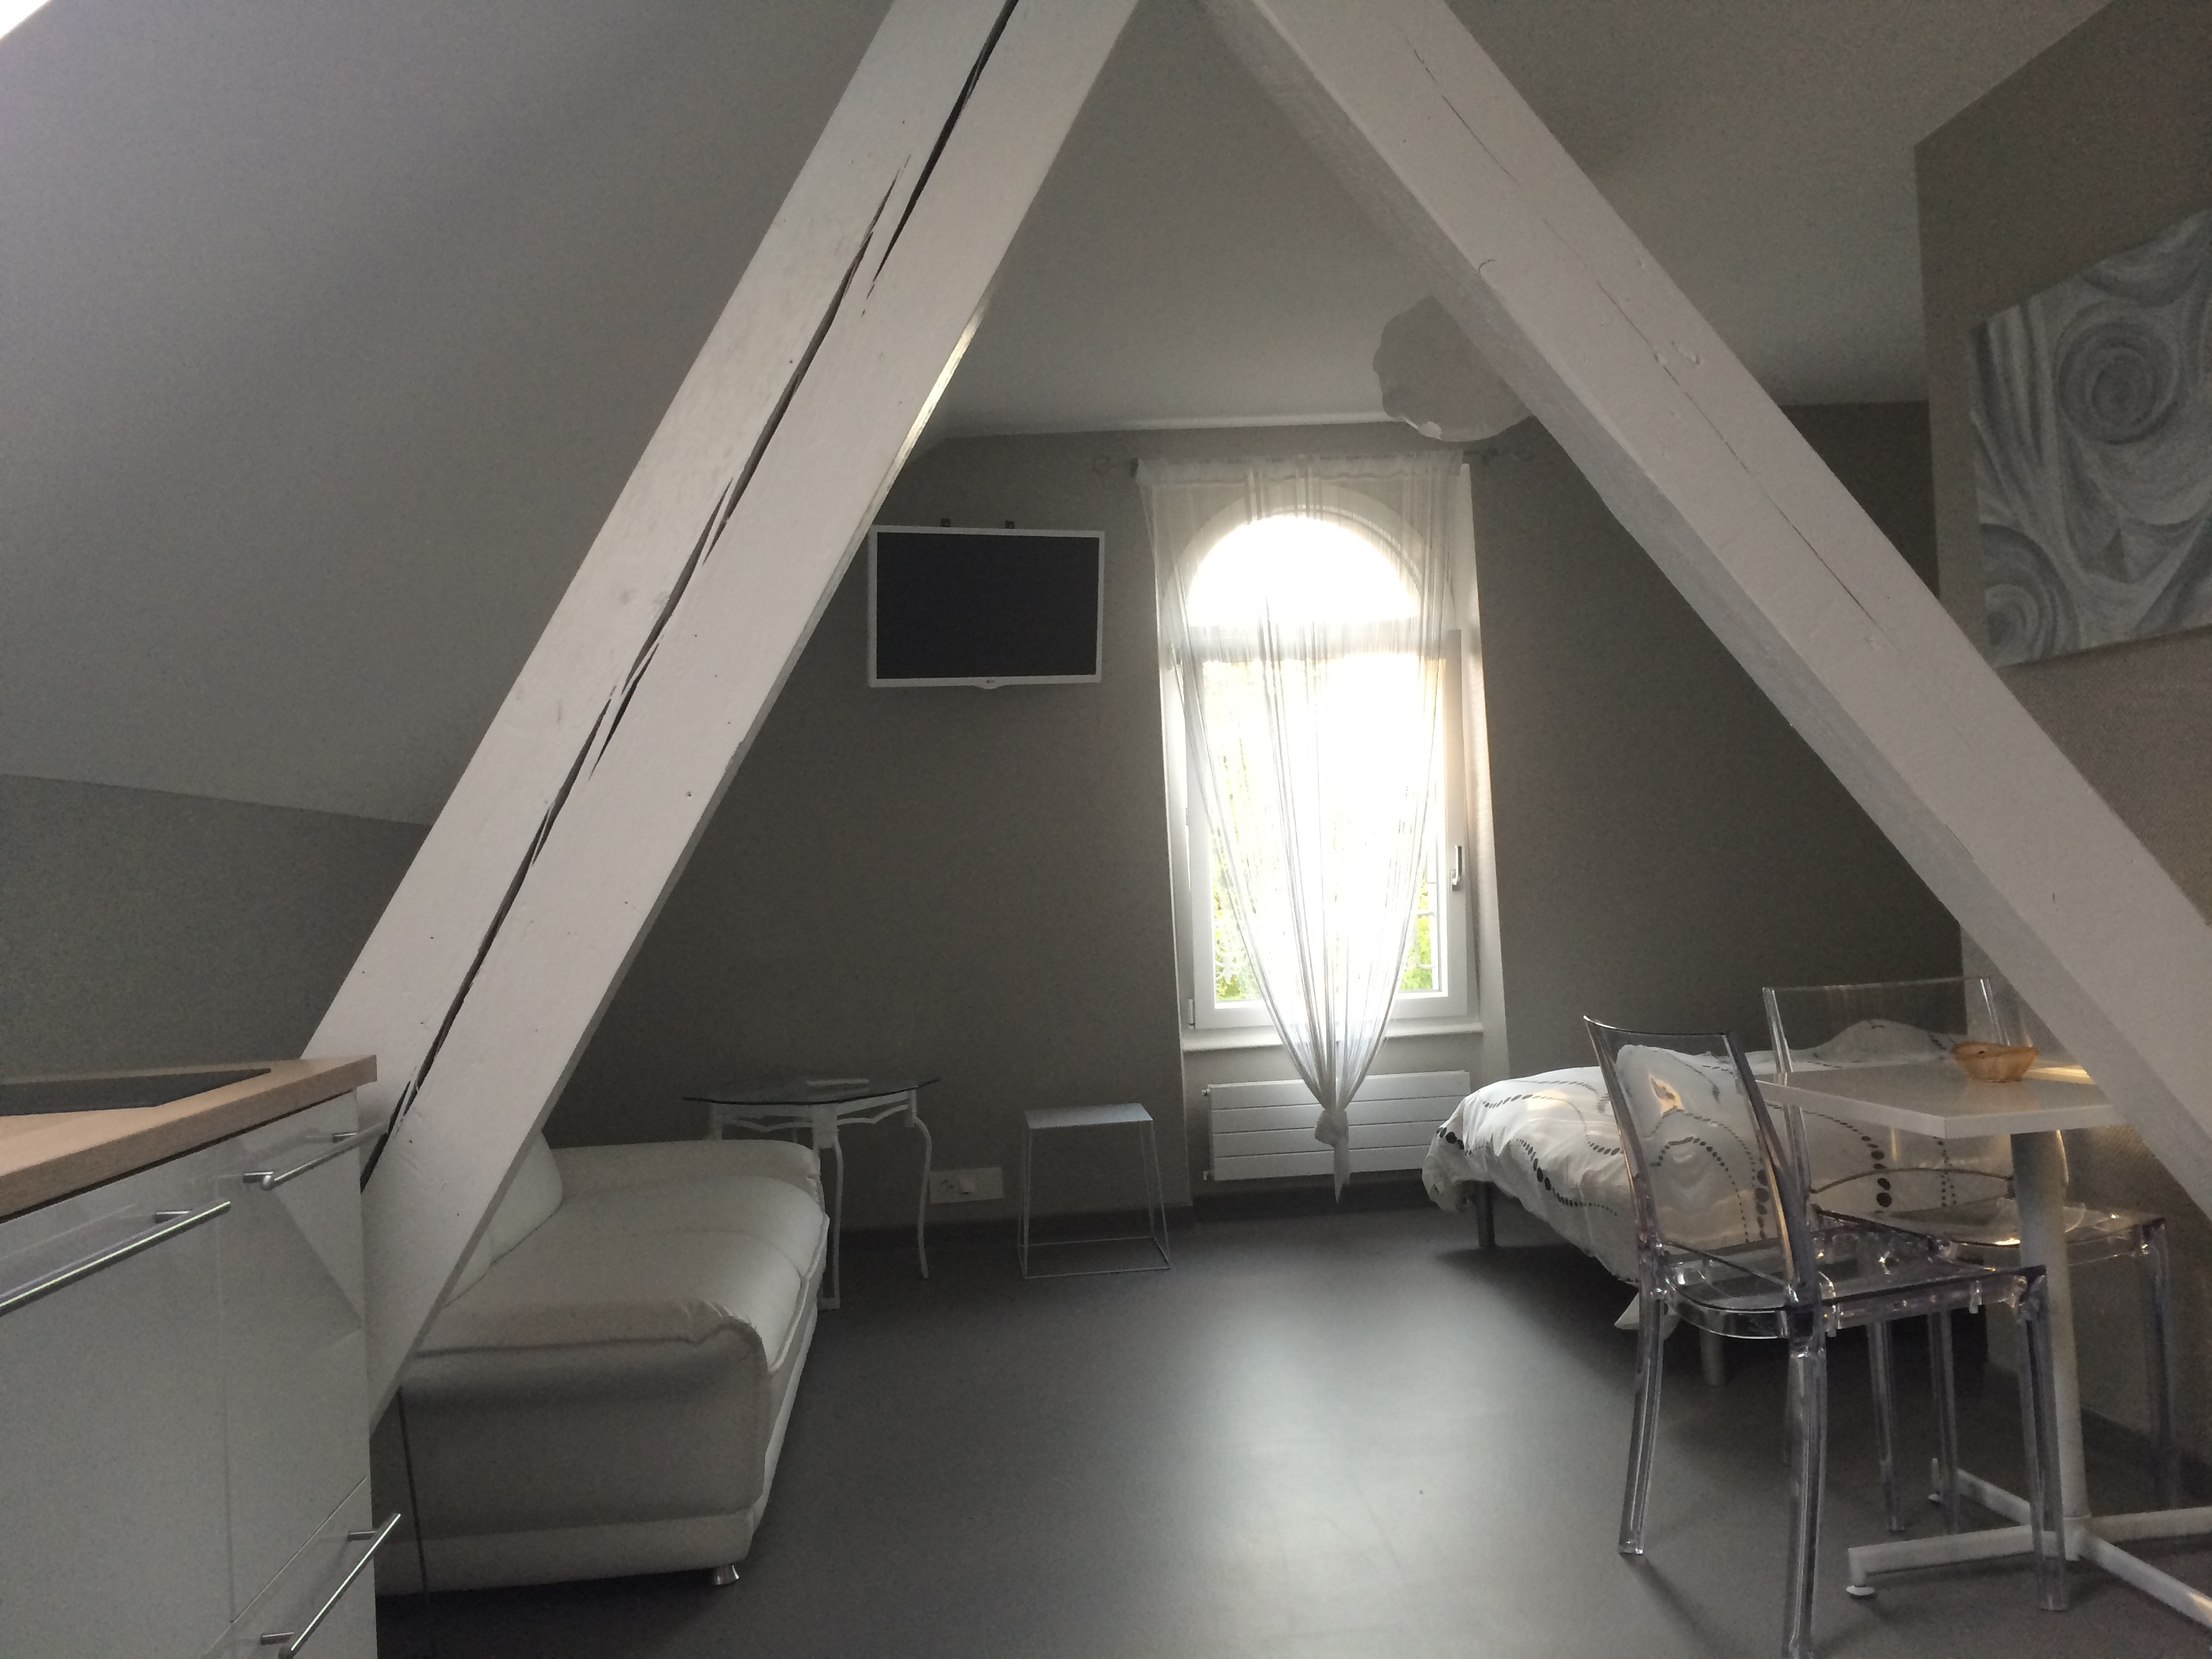 Chambre louer chez costel pili bussigny 97122 roomlala - Chambre a louer a geneve ...